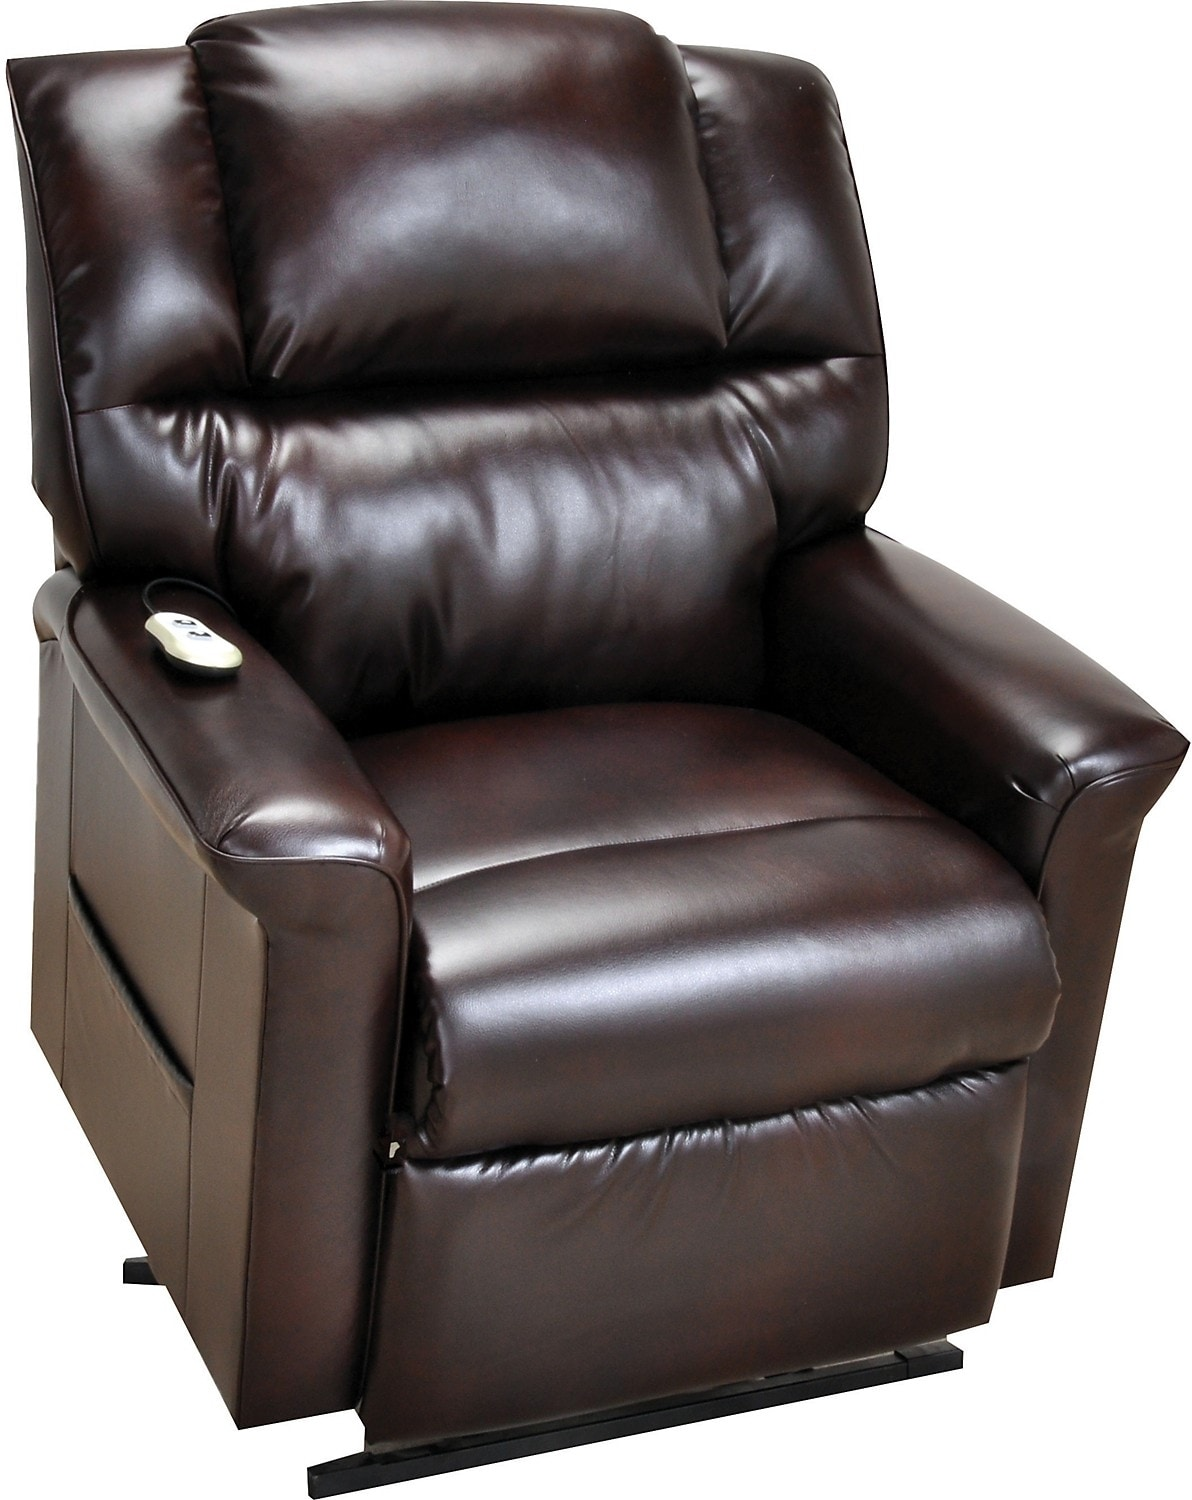 Bonded leather 3 position power lift recliner brown for Recliner lift chair